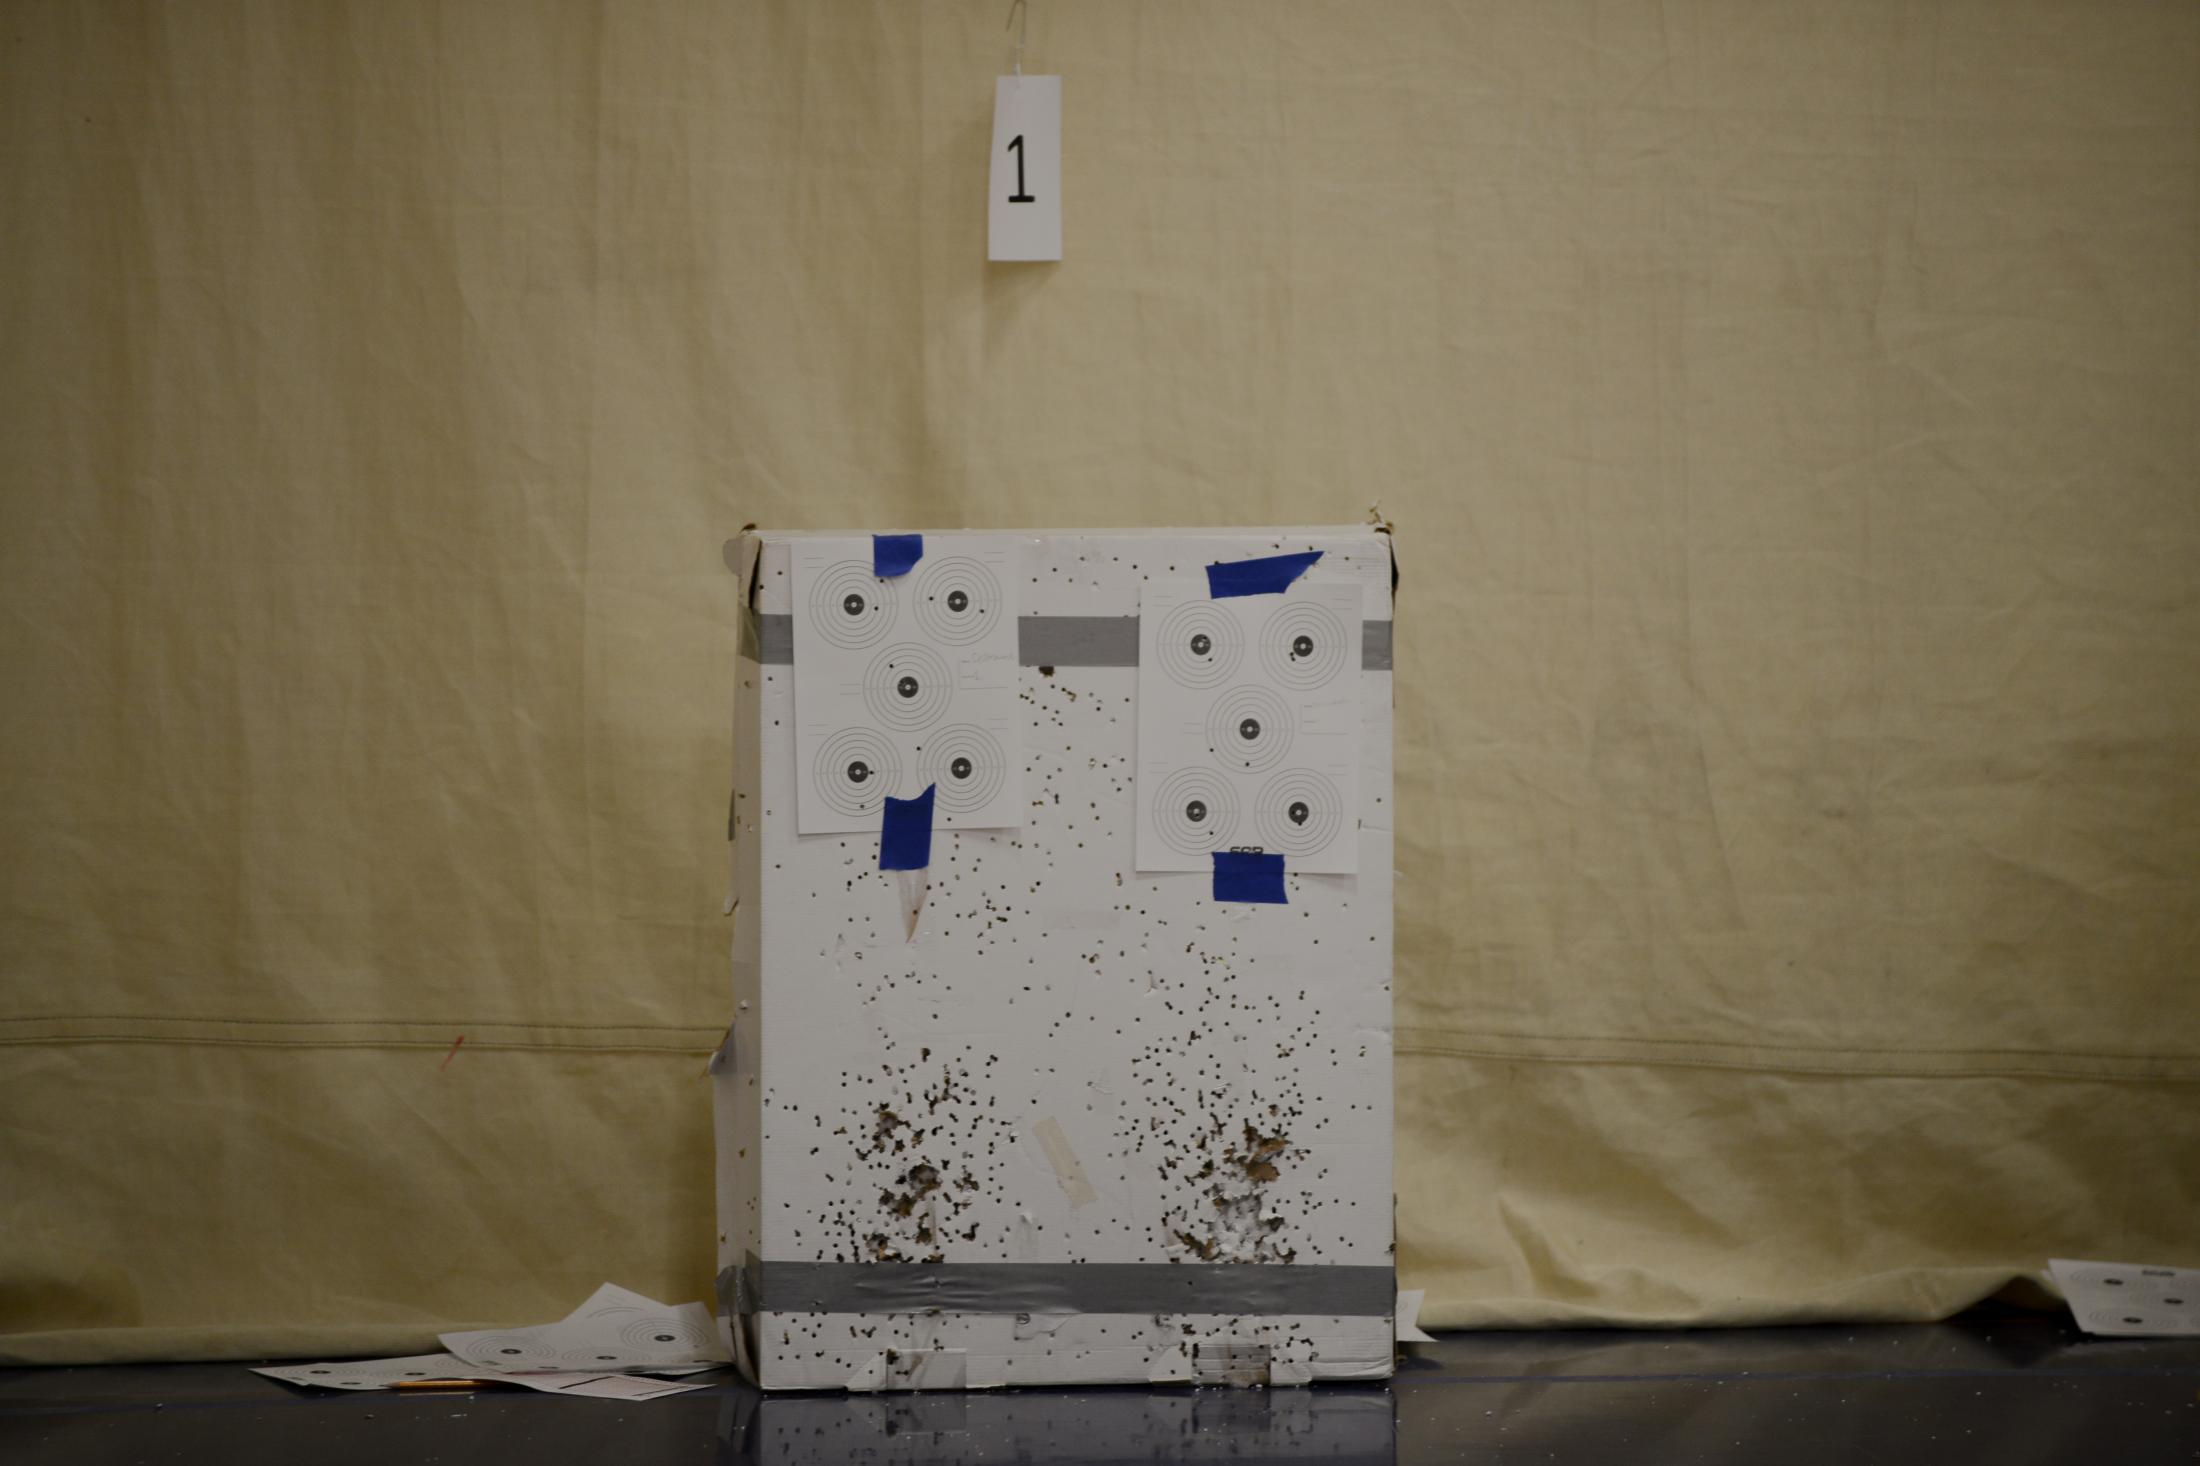 A set of targets sit on cardboard filled with holes from air rifles between rounds at a Student Air Rifle Program tournament in the gym of Clever High School in Clever, Missouri on November 14, 2019. The SAR is funded in part by the NRA Foundation.